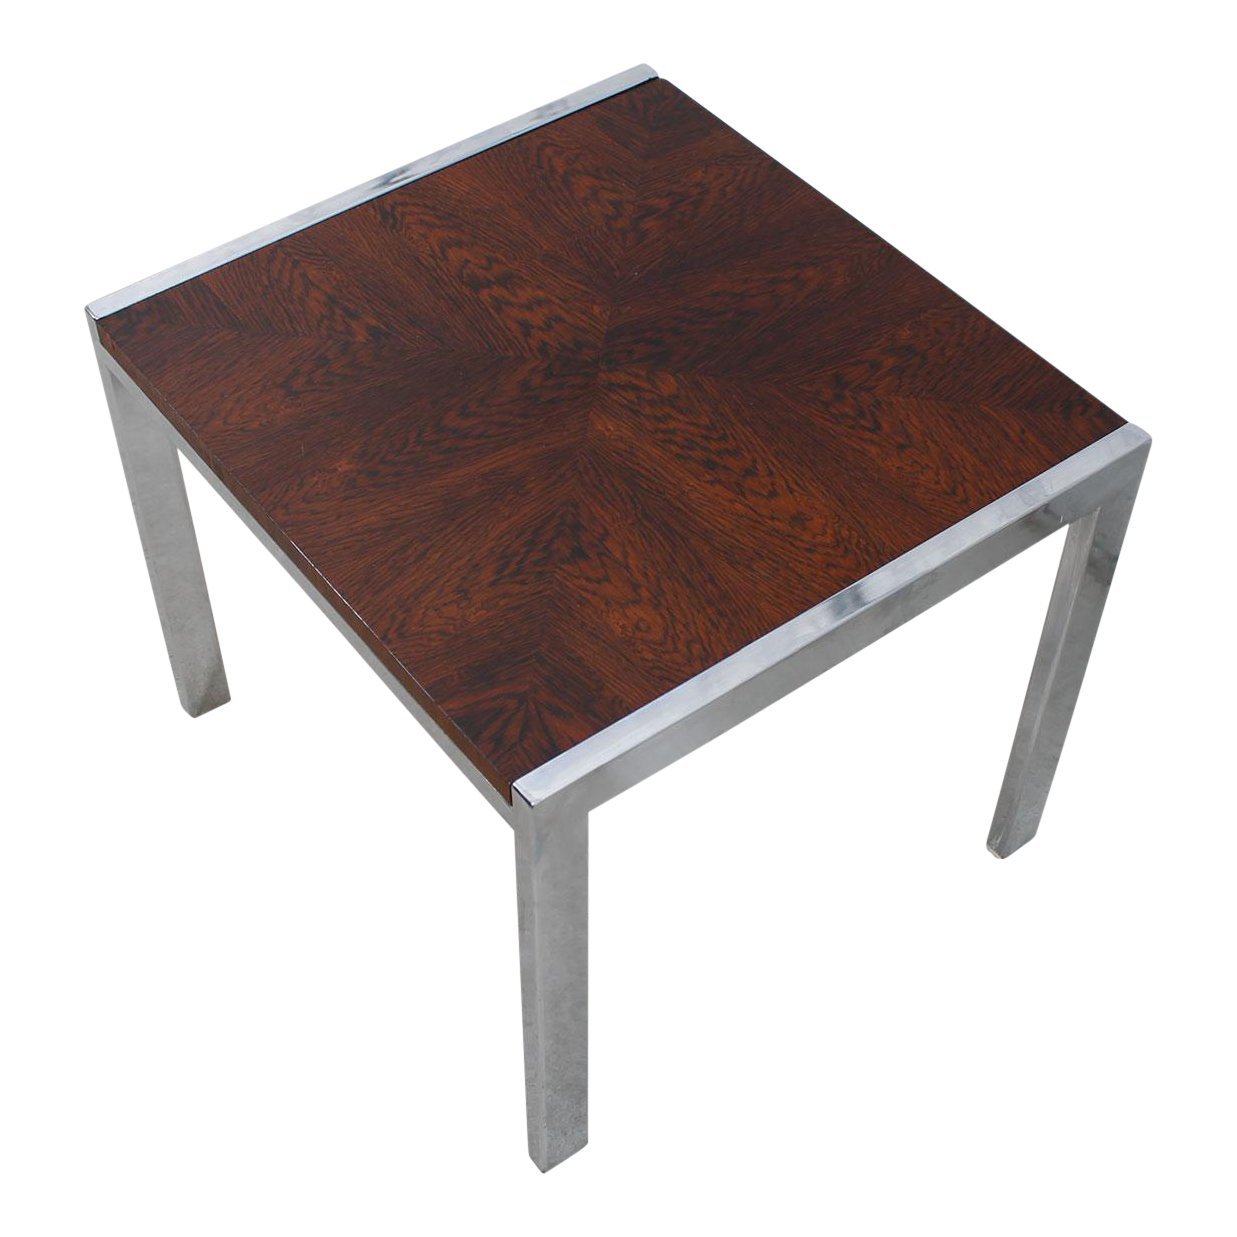 danish modern small rosewood chrome accent table chairish and huge outdoor umbrella cool sofa tables room essentials desk oak drop leaf dining ikea furniture salvaged trestle